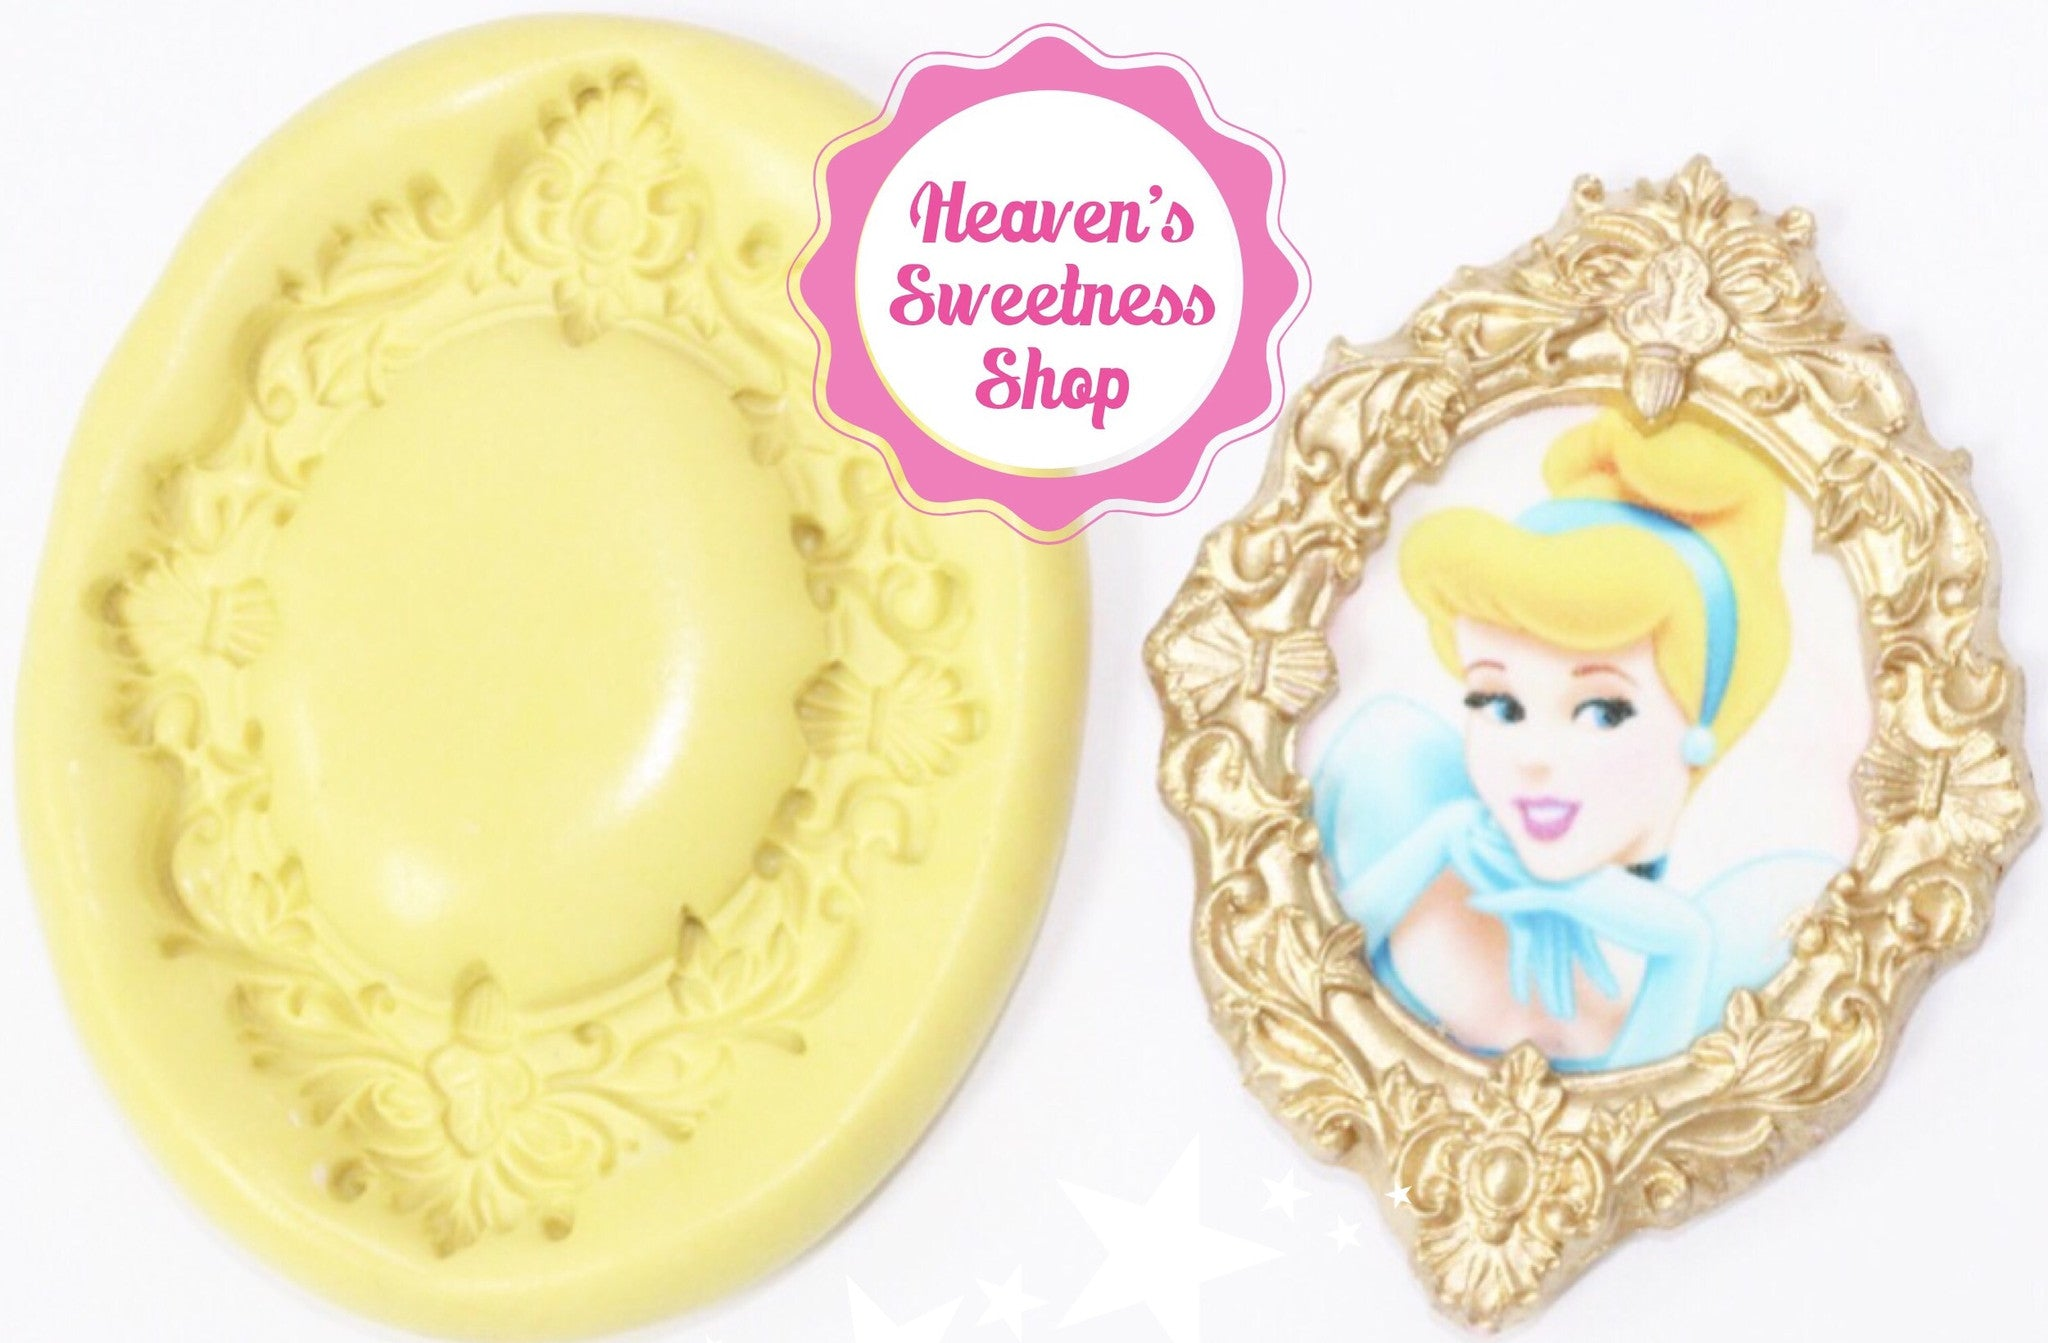 ccc7ae6a4f HS Yellow Collection - Fancy Princess Mirror Frame - Heaven's ...